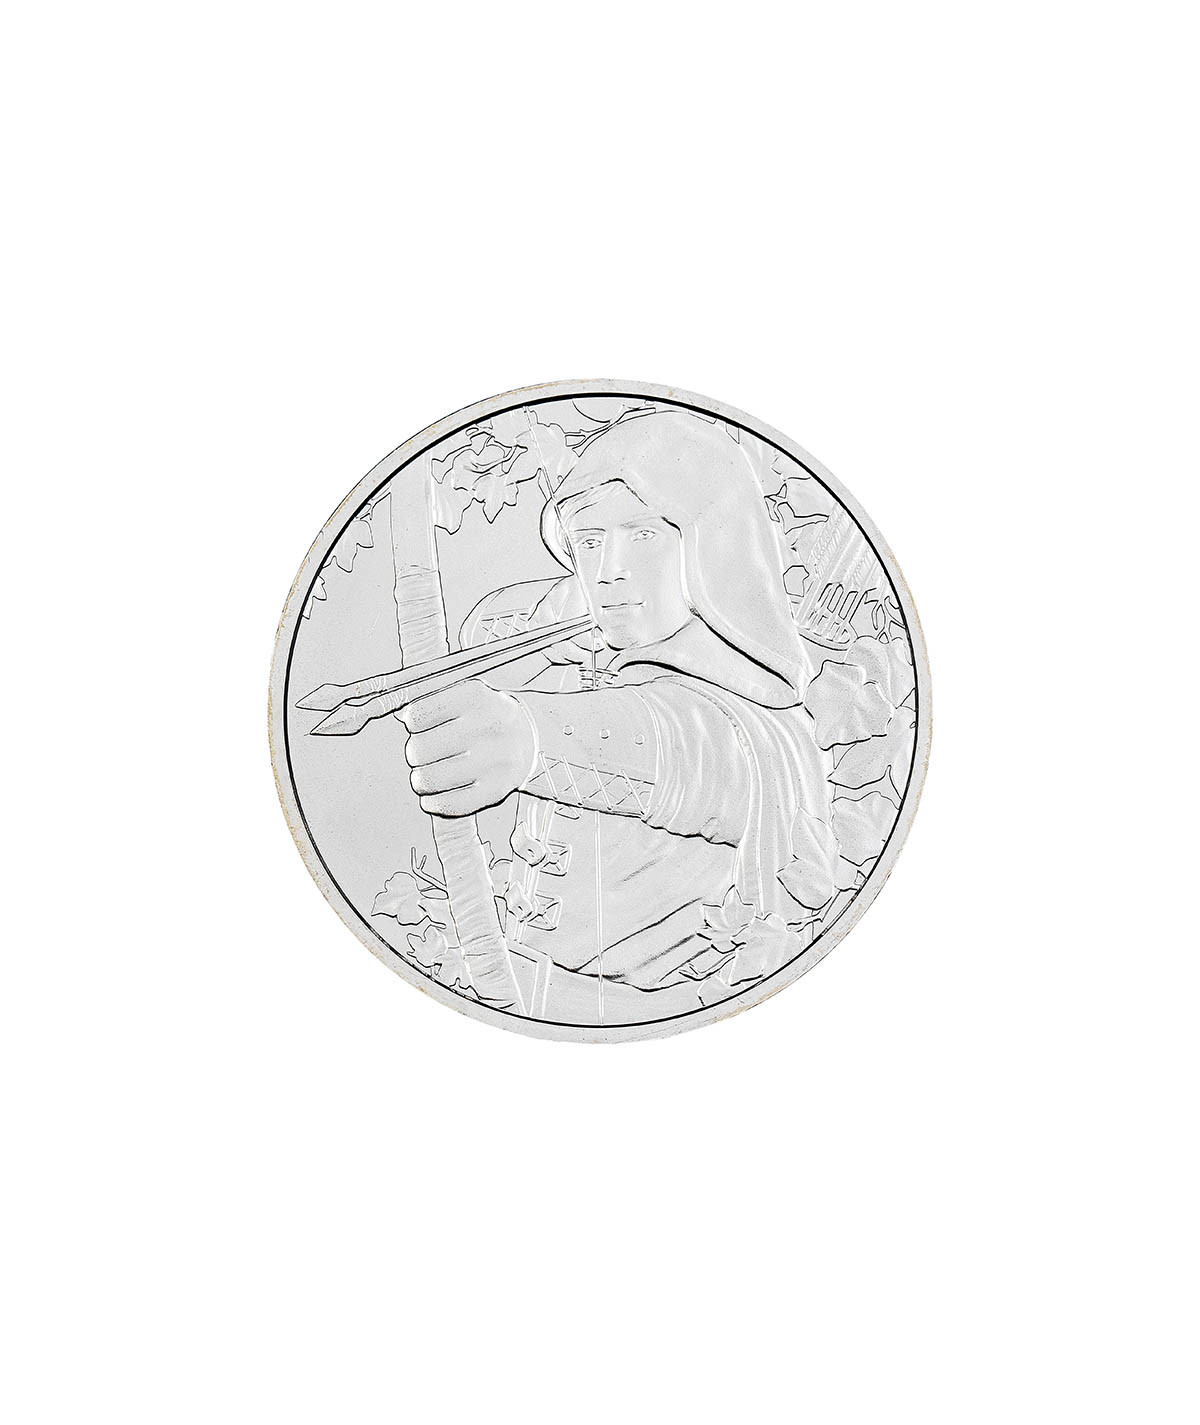 1oz Silver Coin Robin Hood from 2019 - 825th Anniversary Edition